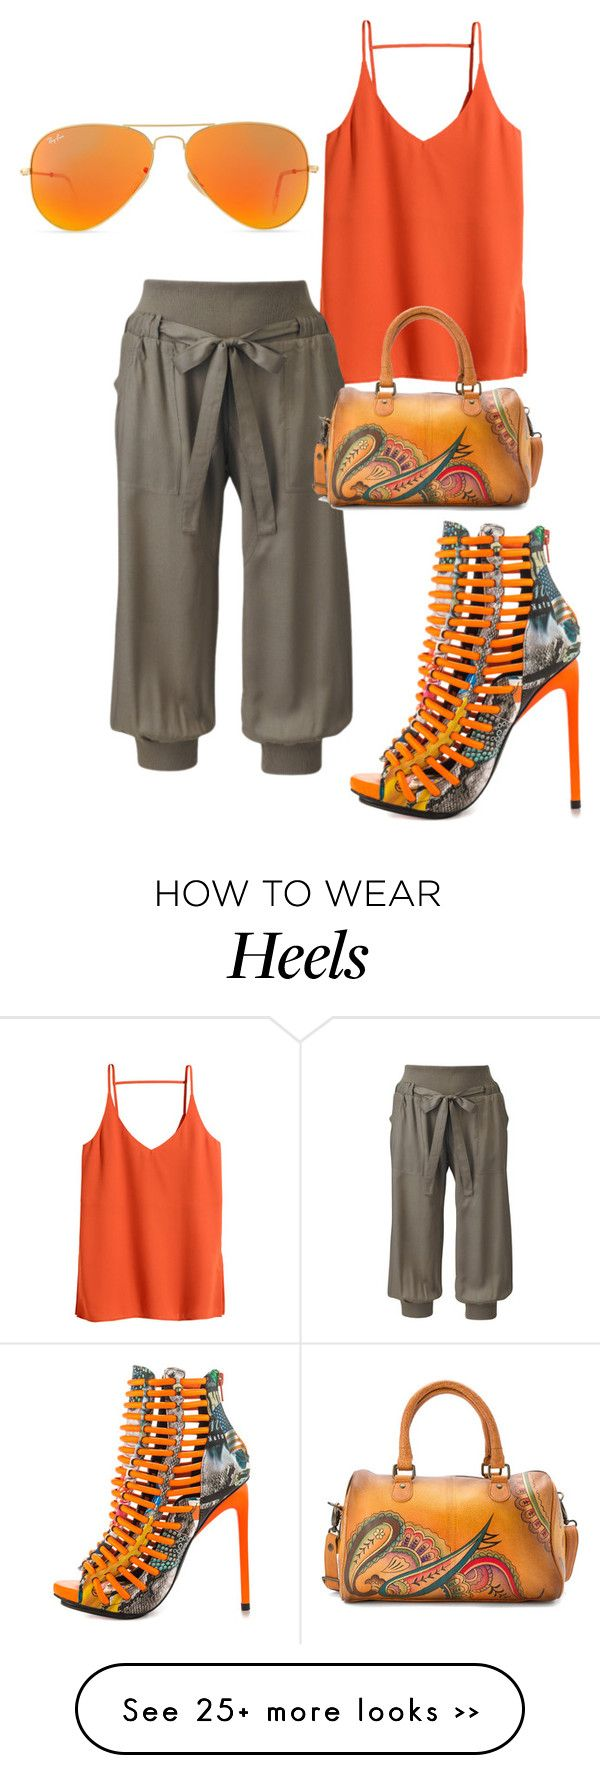 """Untitled #1456"" by styledbycharlieb on Polyvore featuring H&M, Luichiny, Anuschka and Ray-Ban"